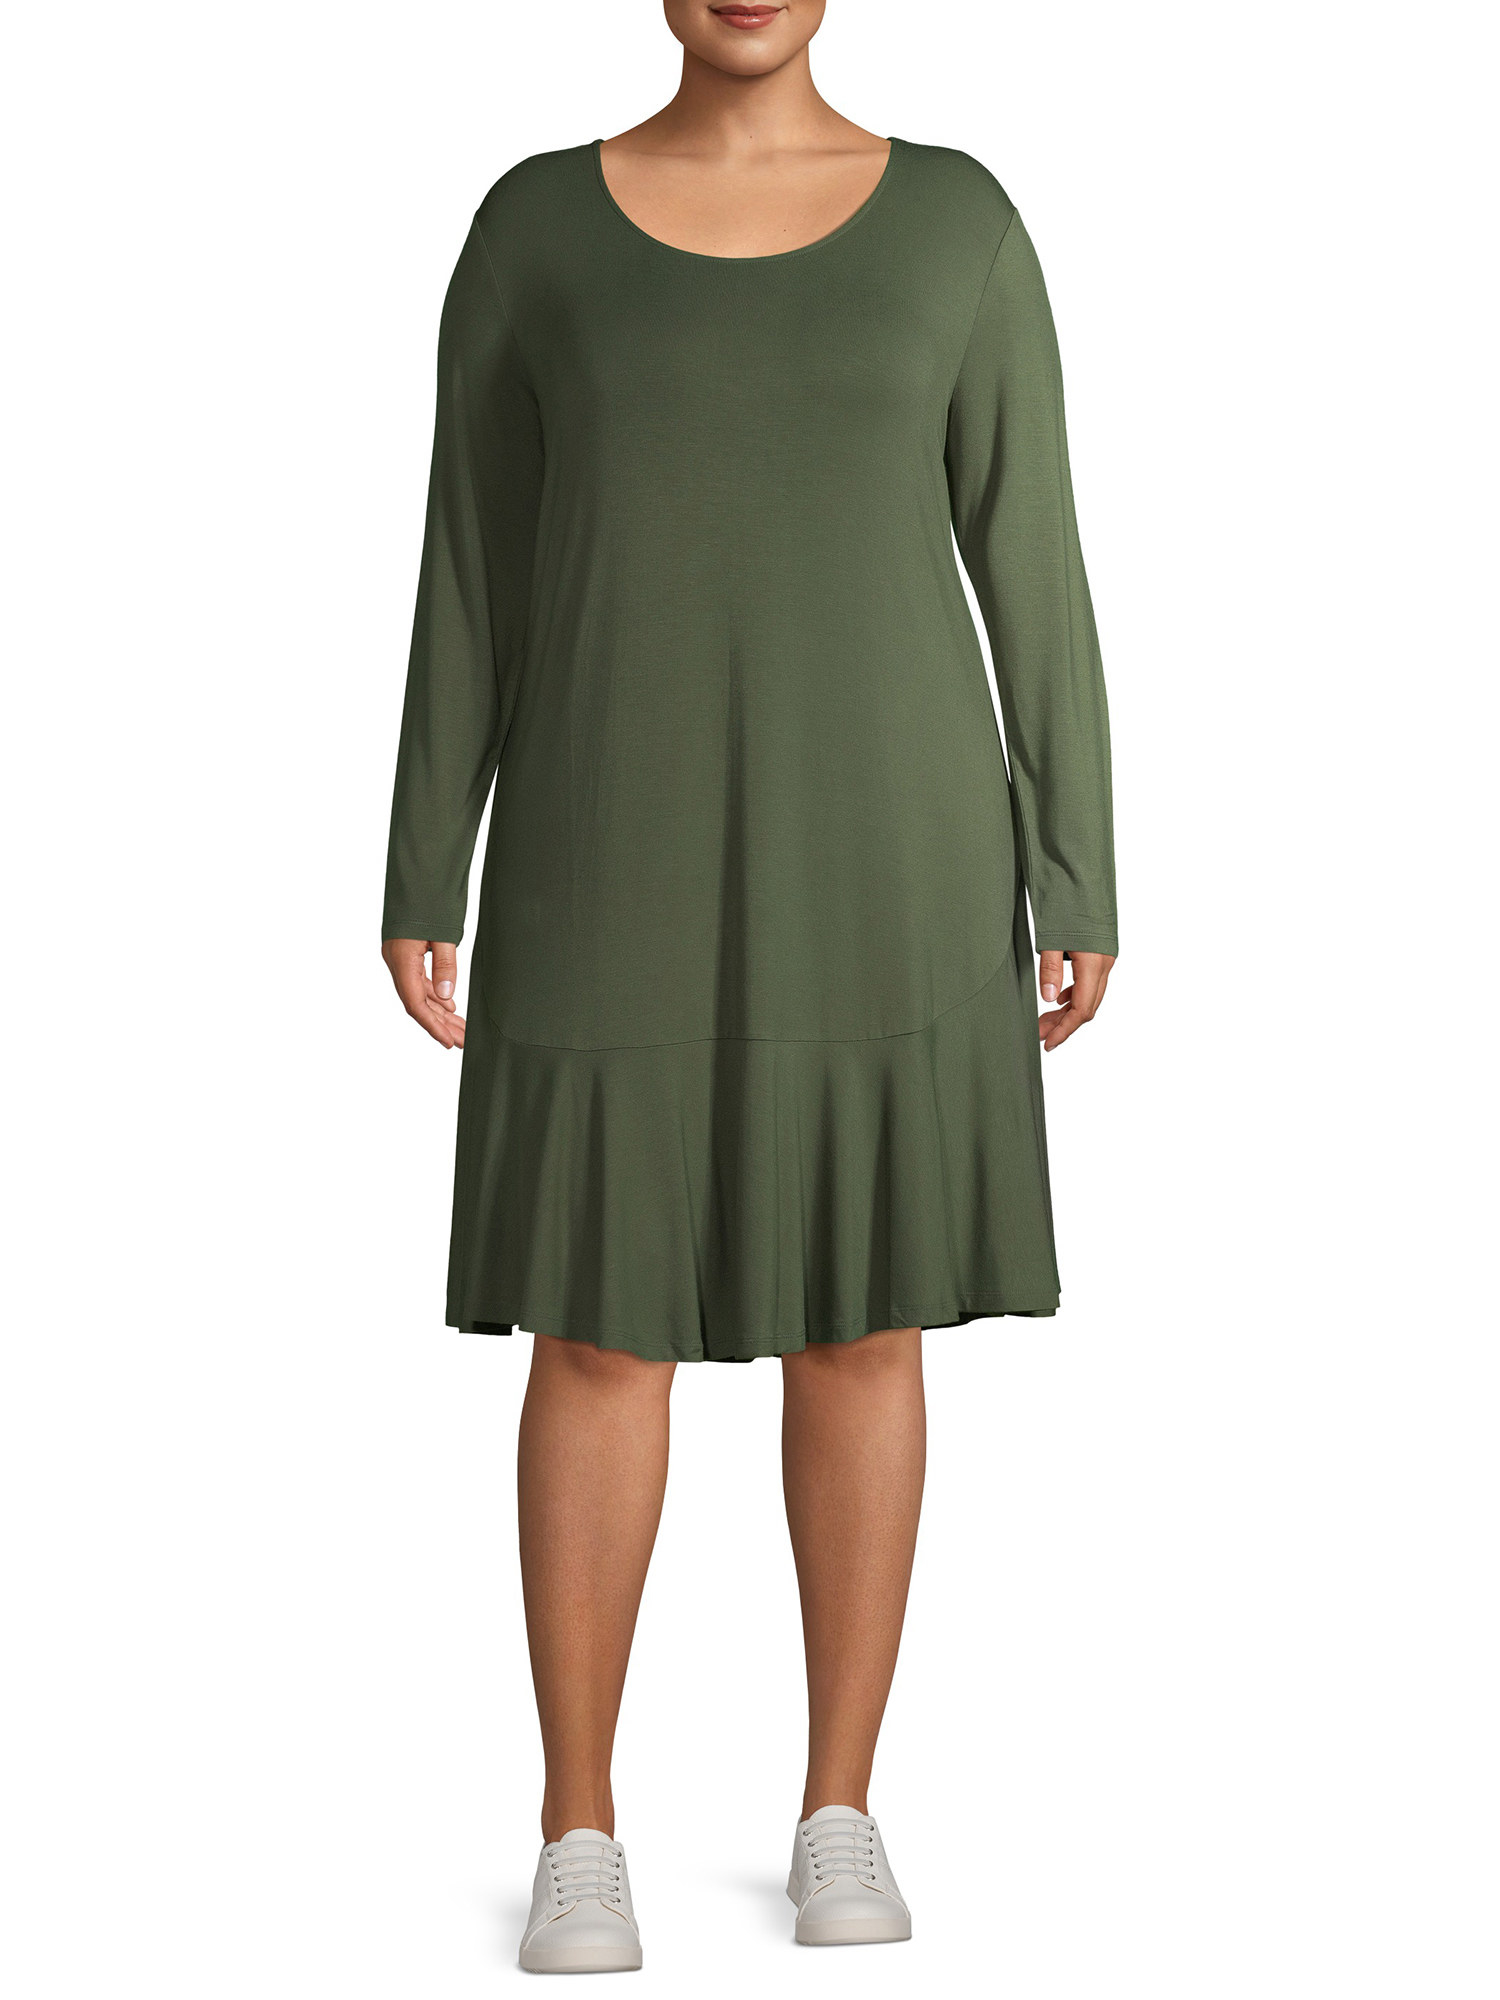 The olive-green knee-length plus-size dress